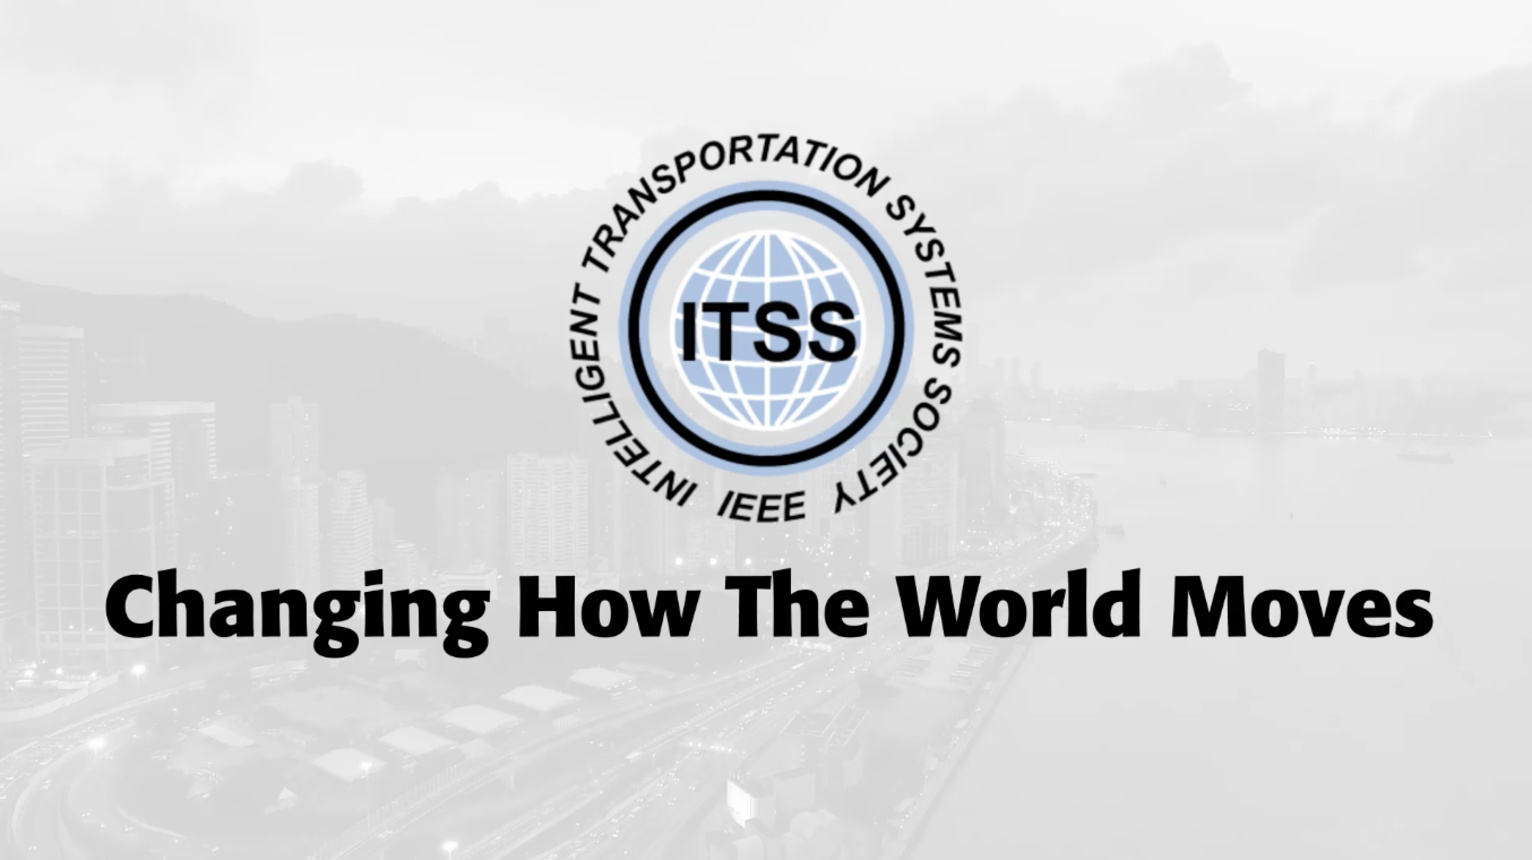 Intelligent Transportation Systems Society: Changing how the world moves